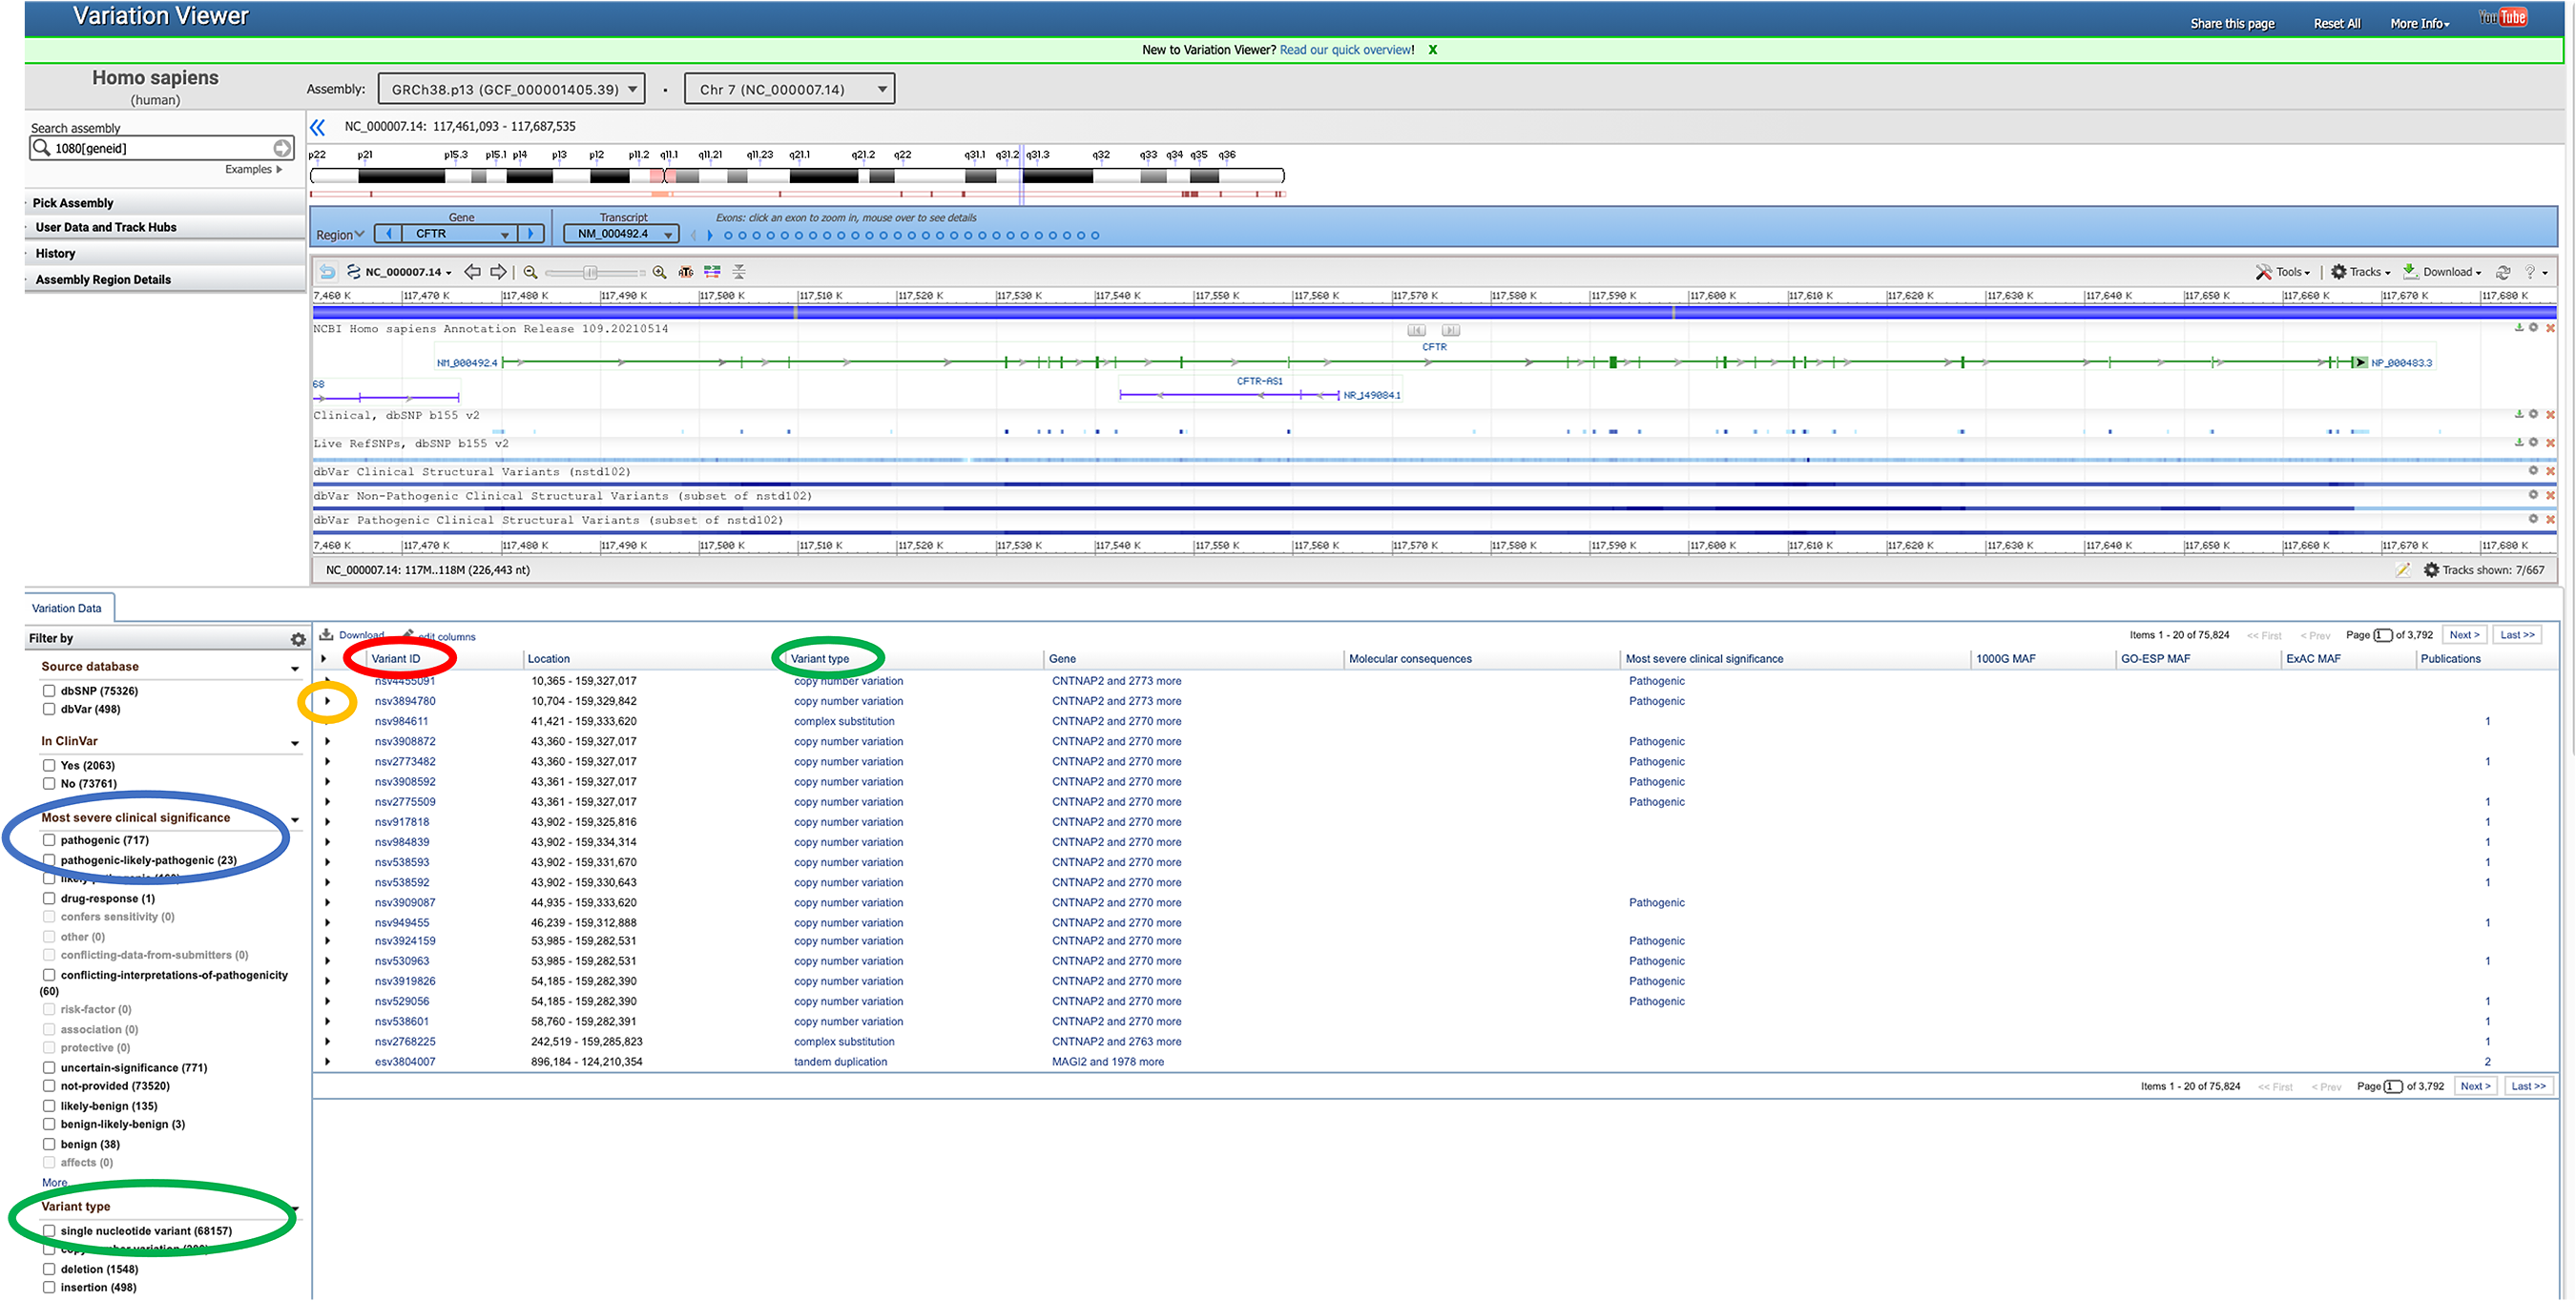 Screenshot of the SNPs for the CFTR gene in the NCBI SNP database.